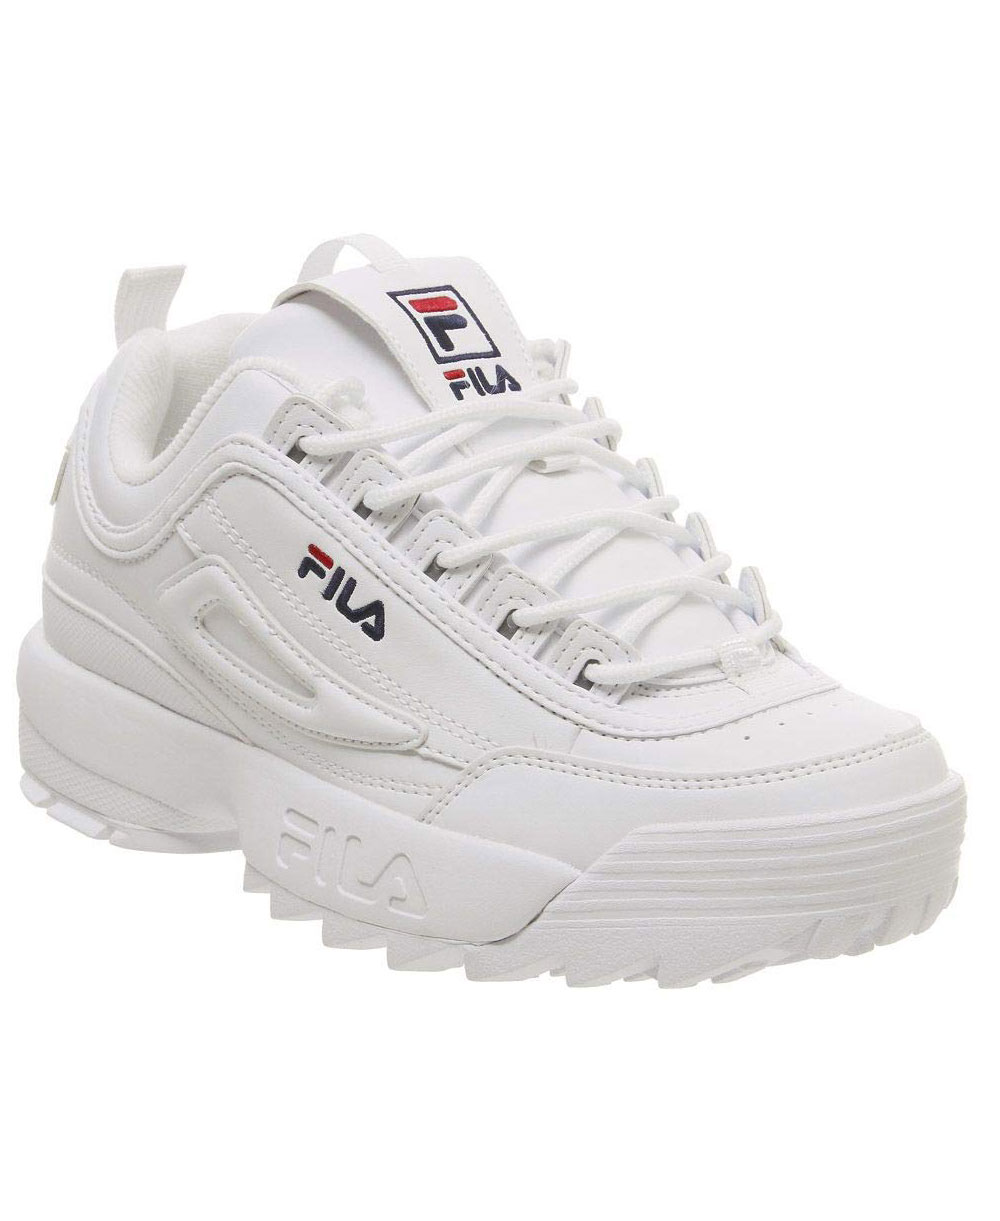 Sneakers White Disruptor Letter Zapatos Ii Mujer Para EH29YWeDI